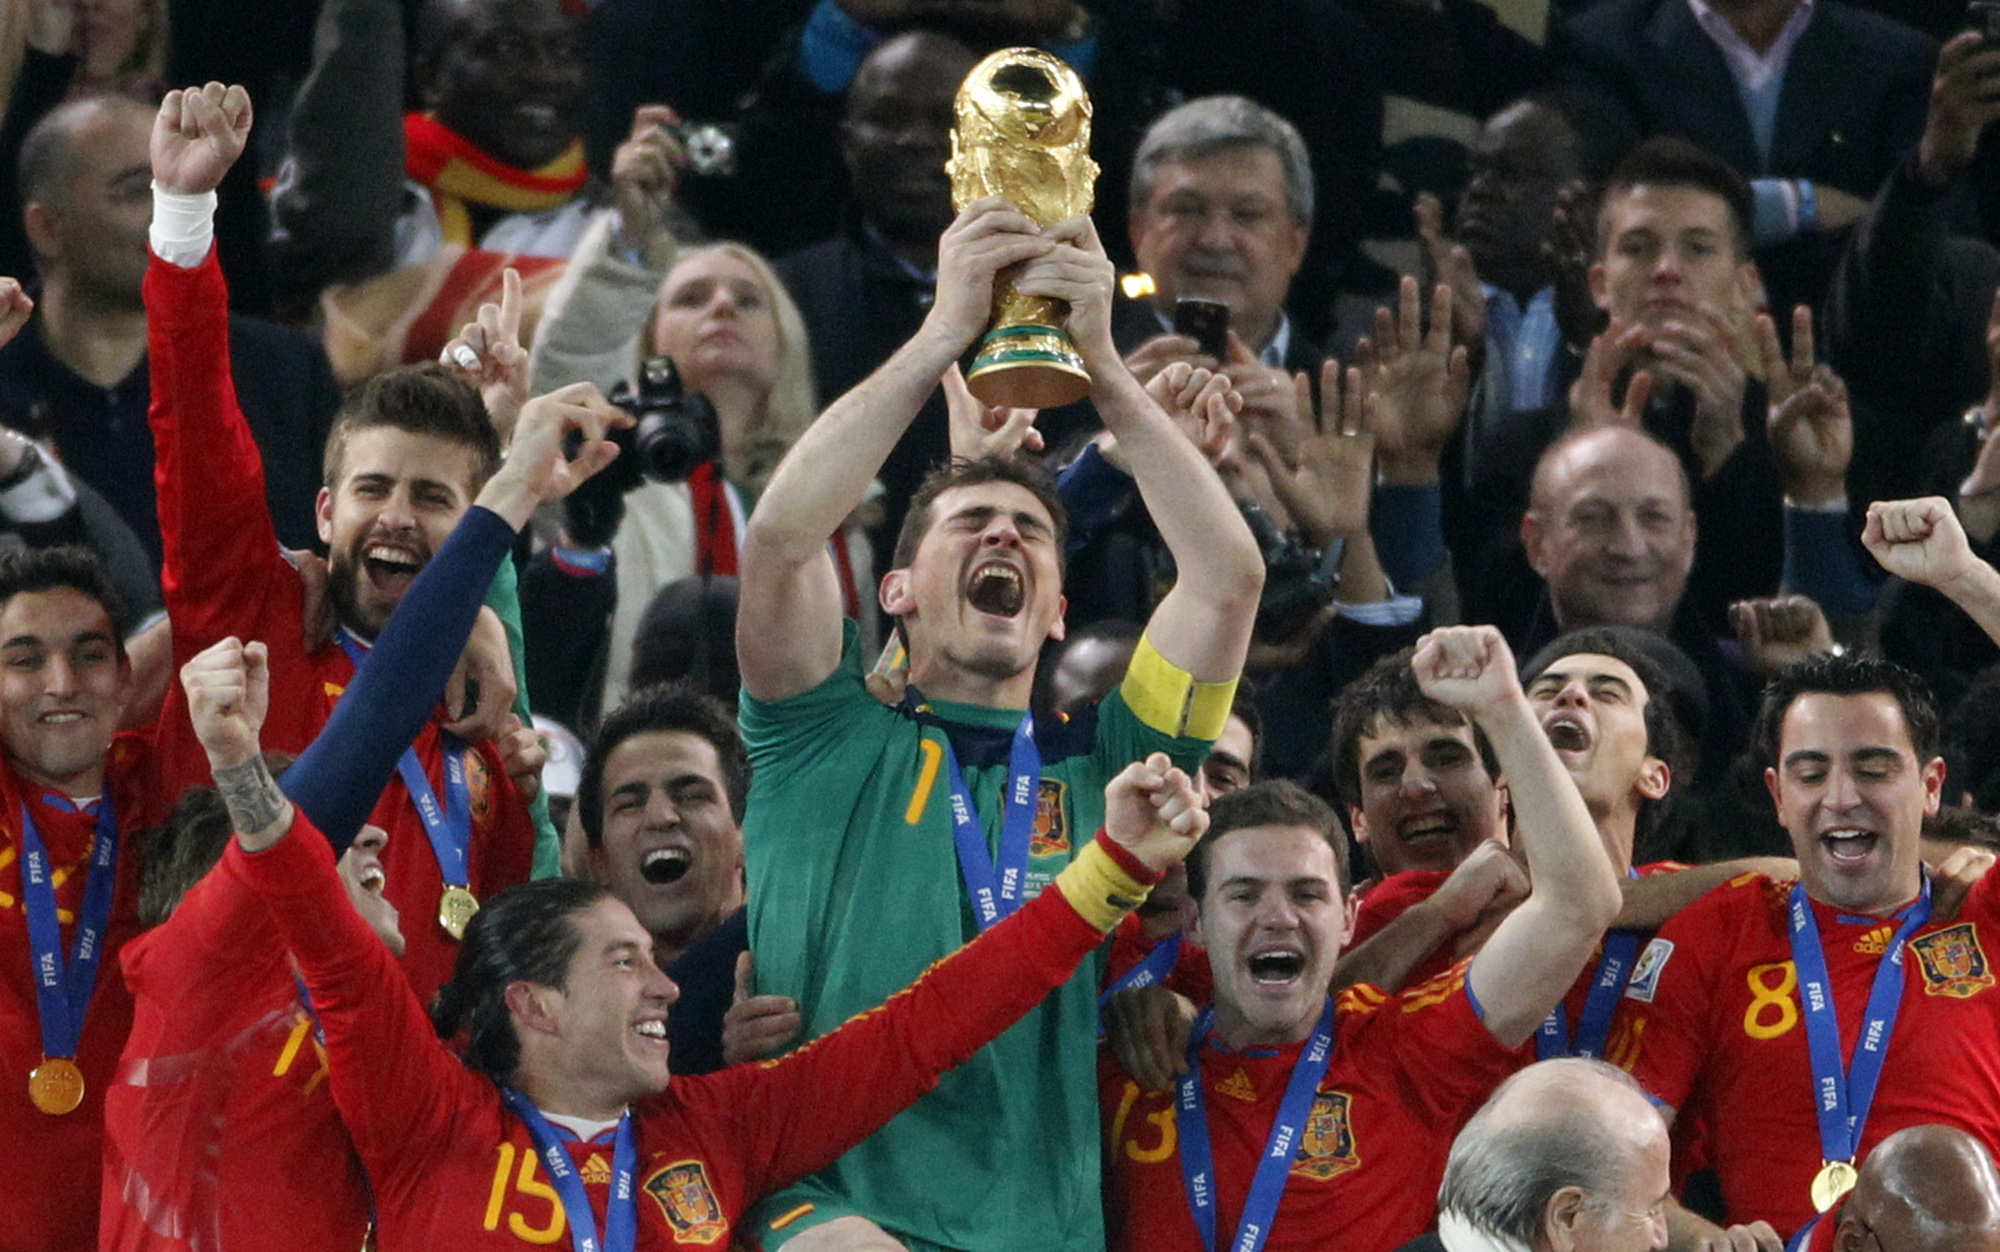 Spain goalkeeper Iker Casillas celebrates with his teammates after winning the 2010 World Cup against the Netherlands. (AP photo)